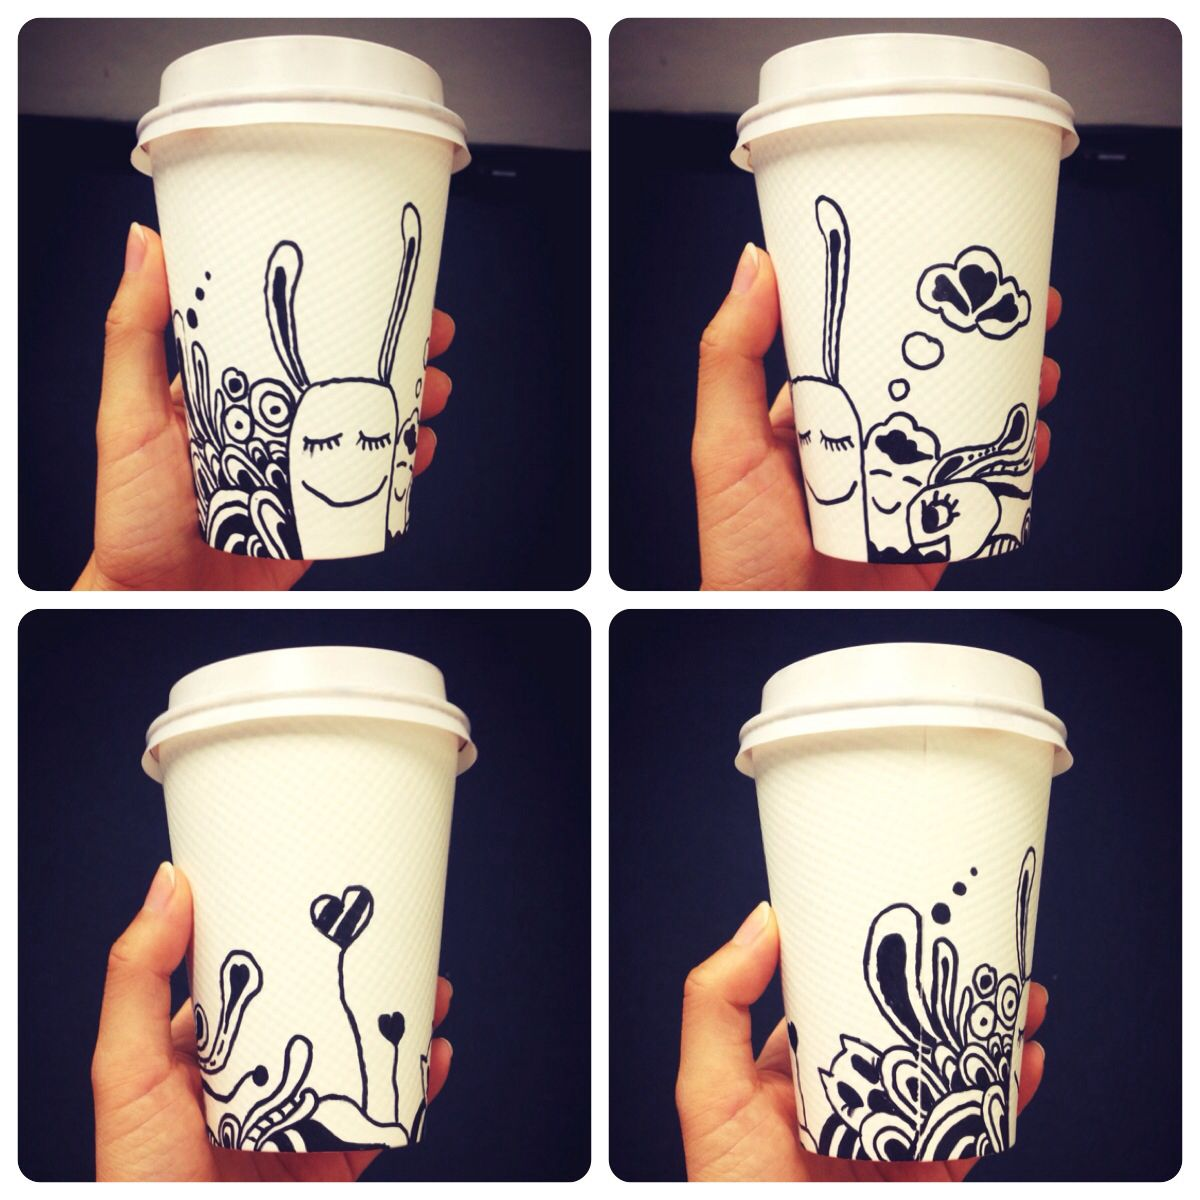 eab02219e38 Coffee cup drawing. Coffee cup doodle. By Norah www.norah.com.au ...